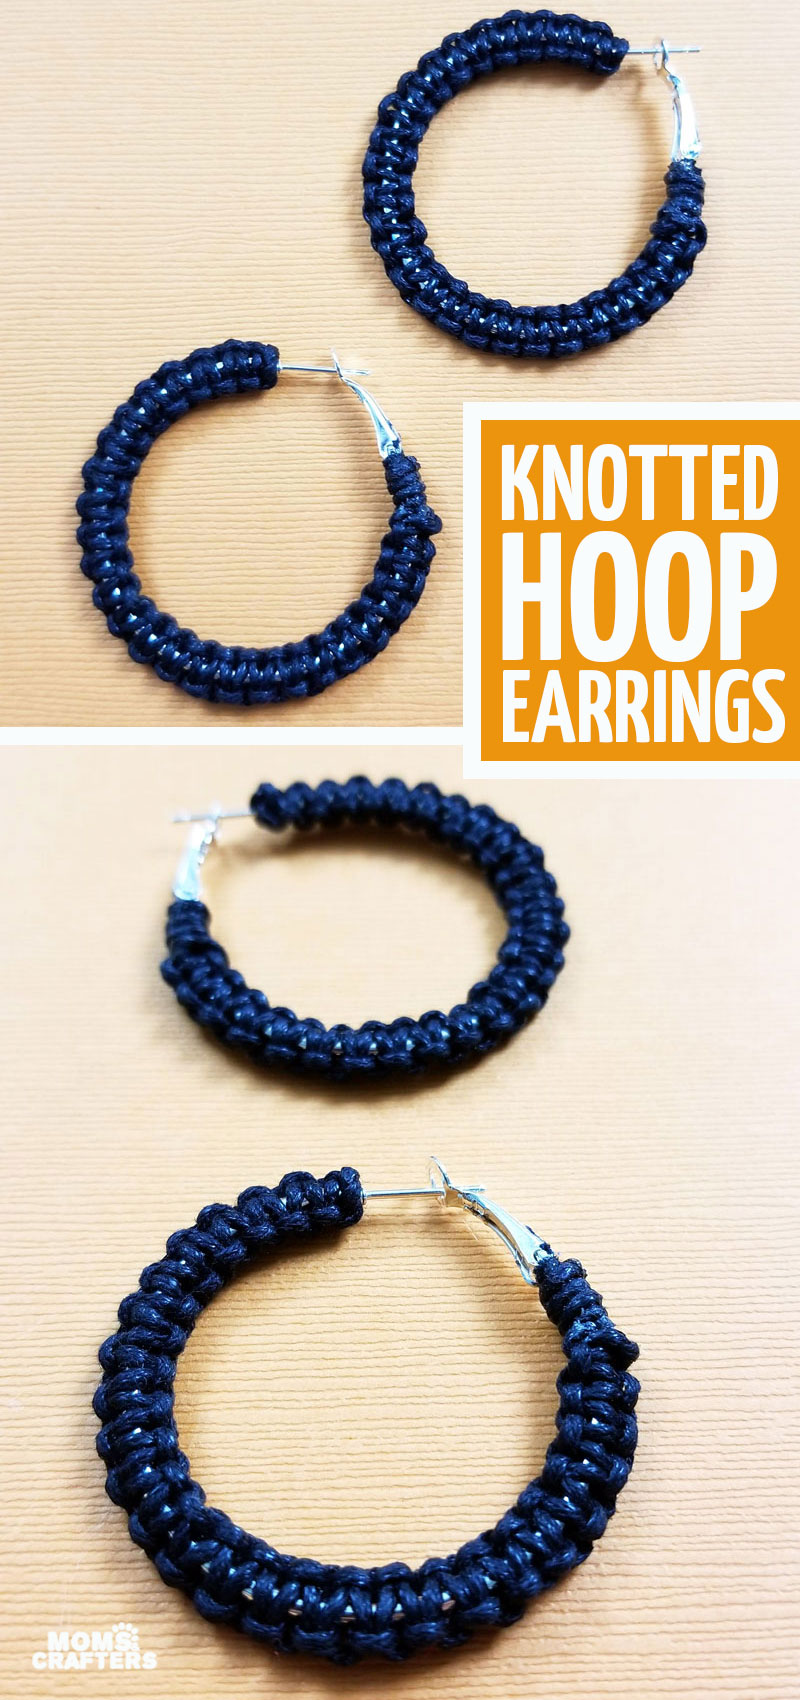 These DIY hoop earrings are so cool - and a fun jewelry making craft for beginners! This DIY jewelry project is perfect for teens and tweens.